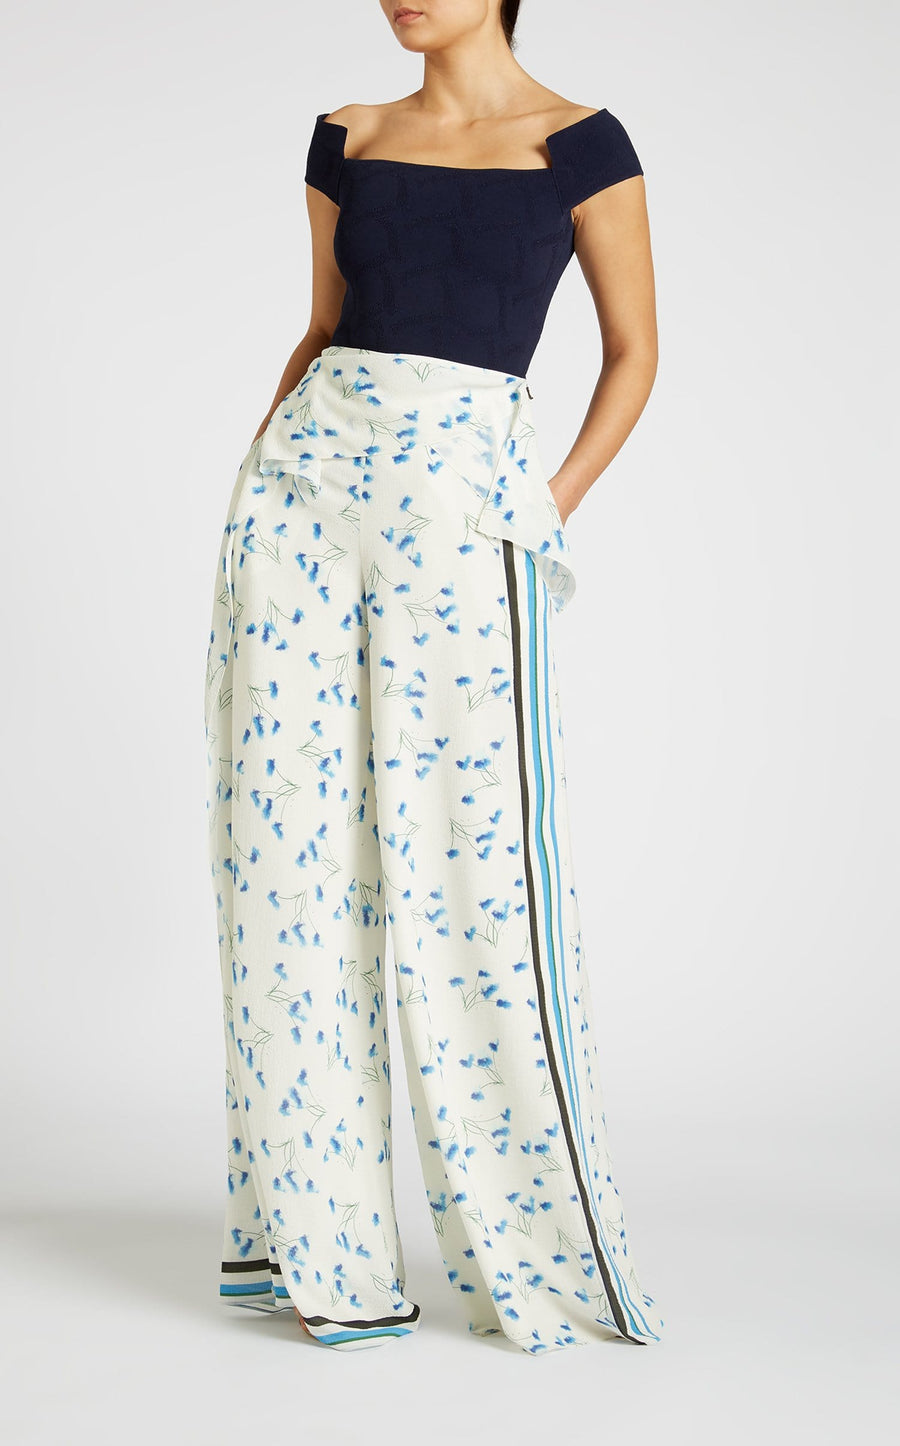 Argott Trouser In Electric Blue Dandelion from Roland Mouret